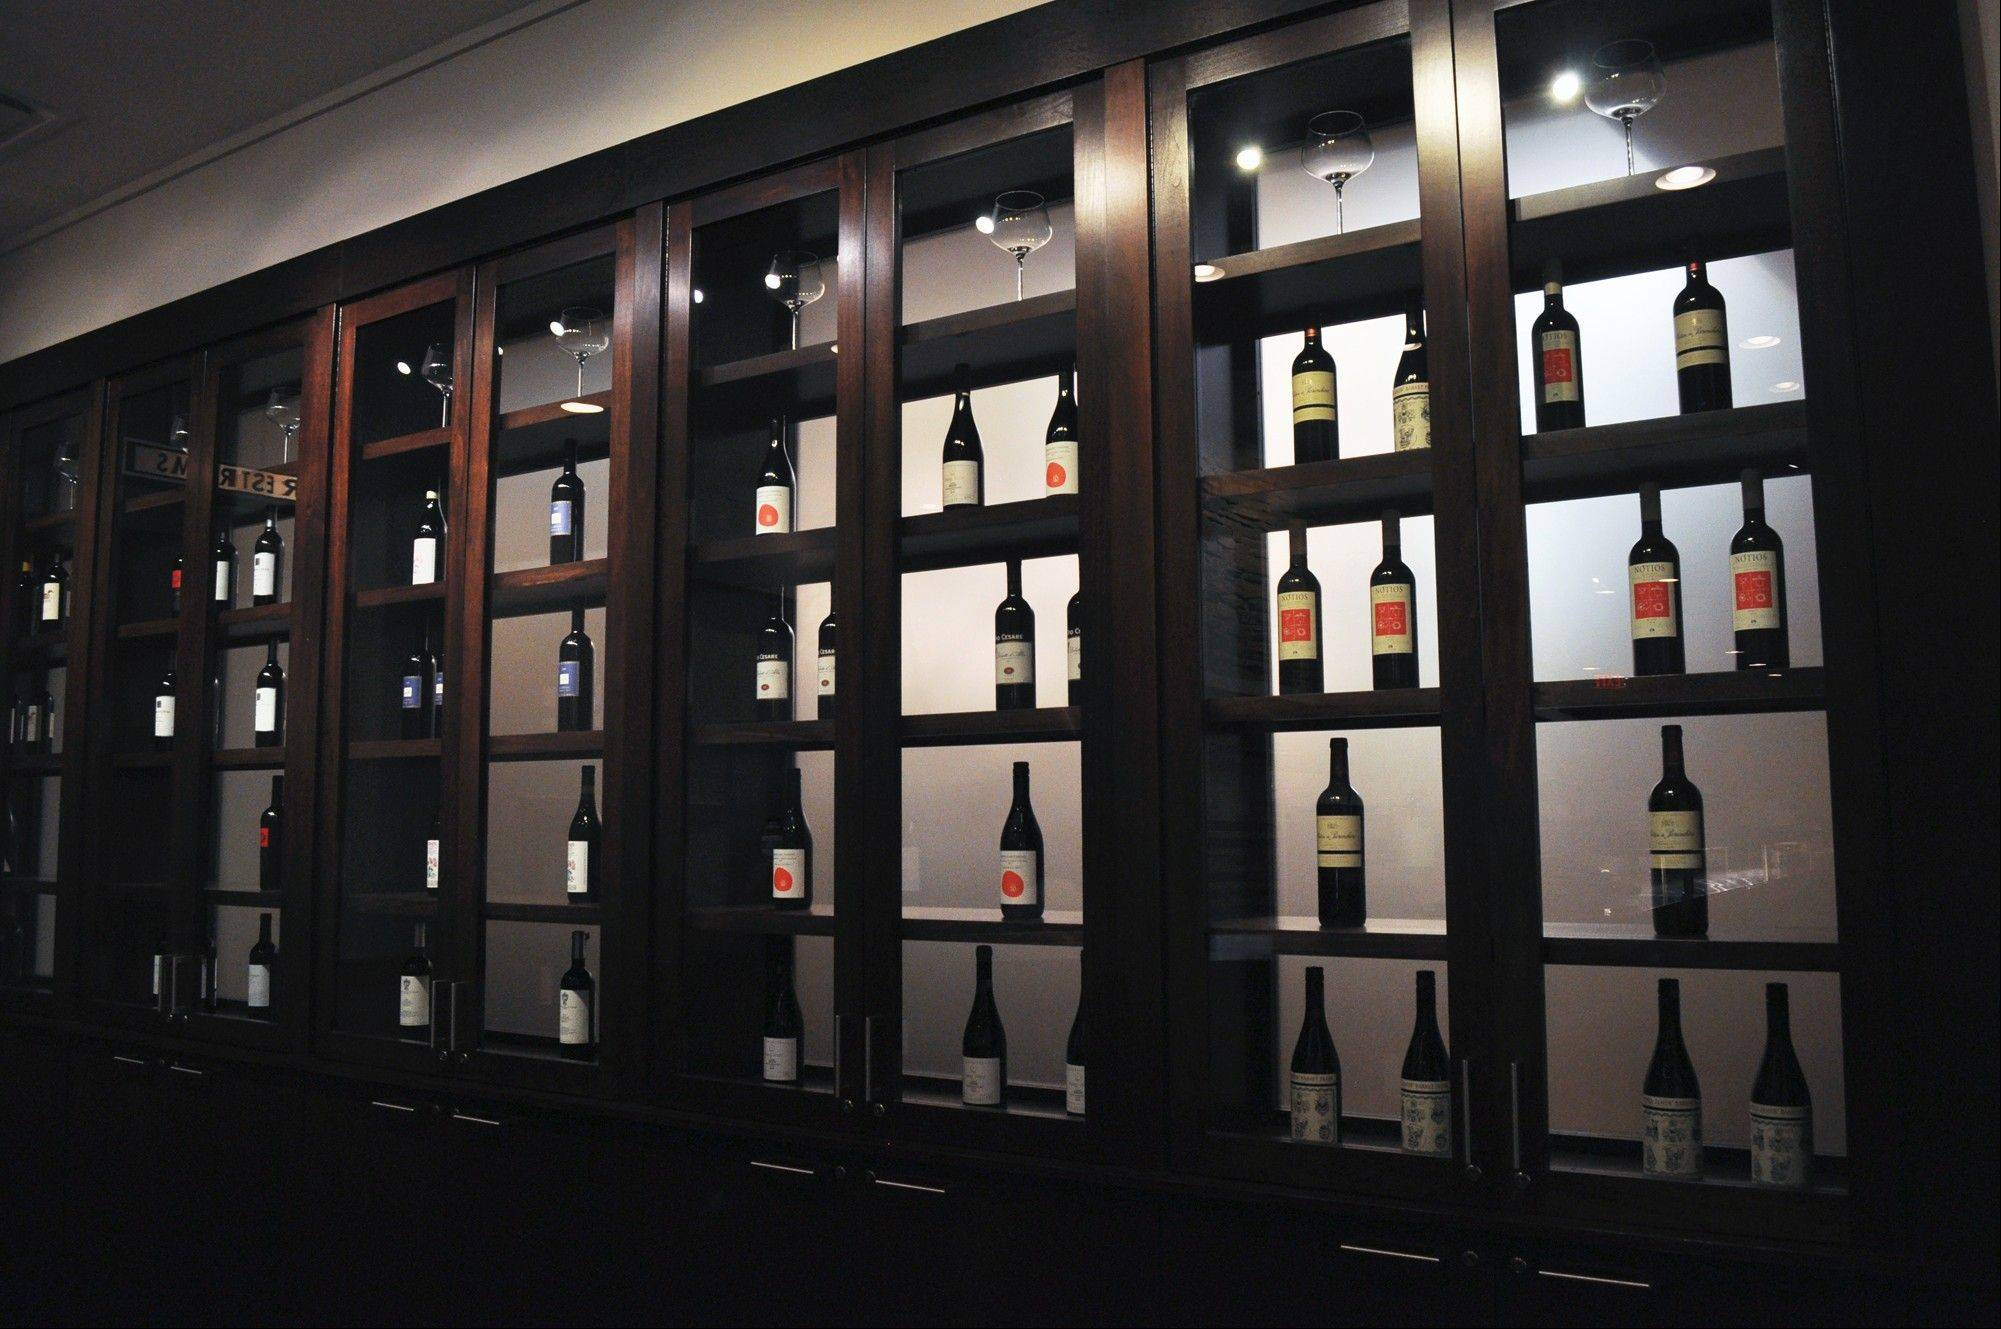 Fresco 21 dedicates a wall to its wines, including those Marchesi di Gresy wines featured at a wine dinner on Tuesday, Oct. 16.